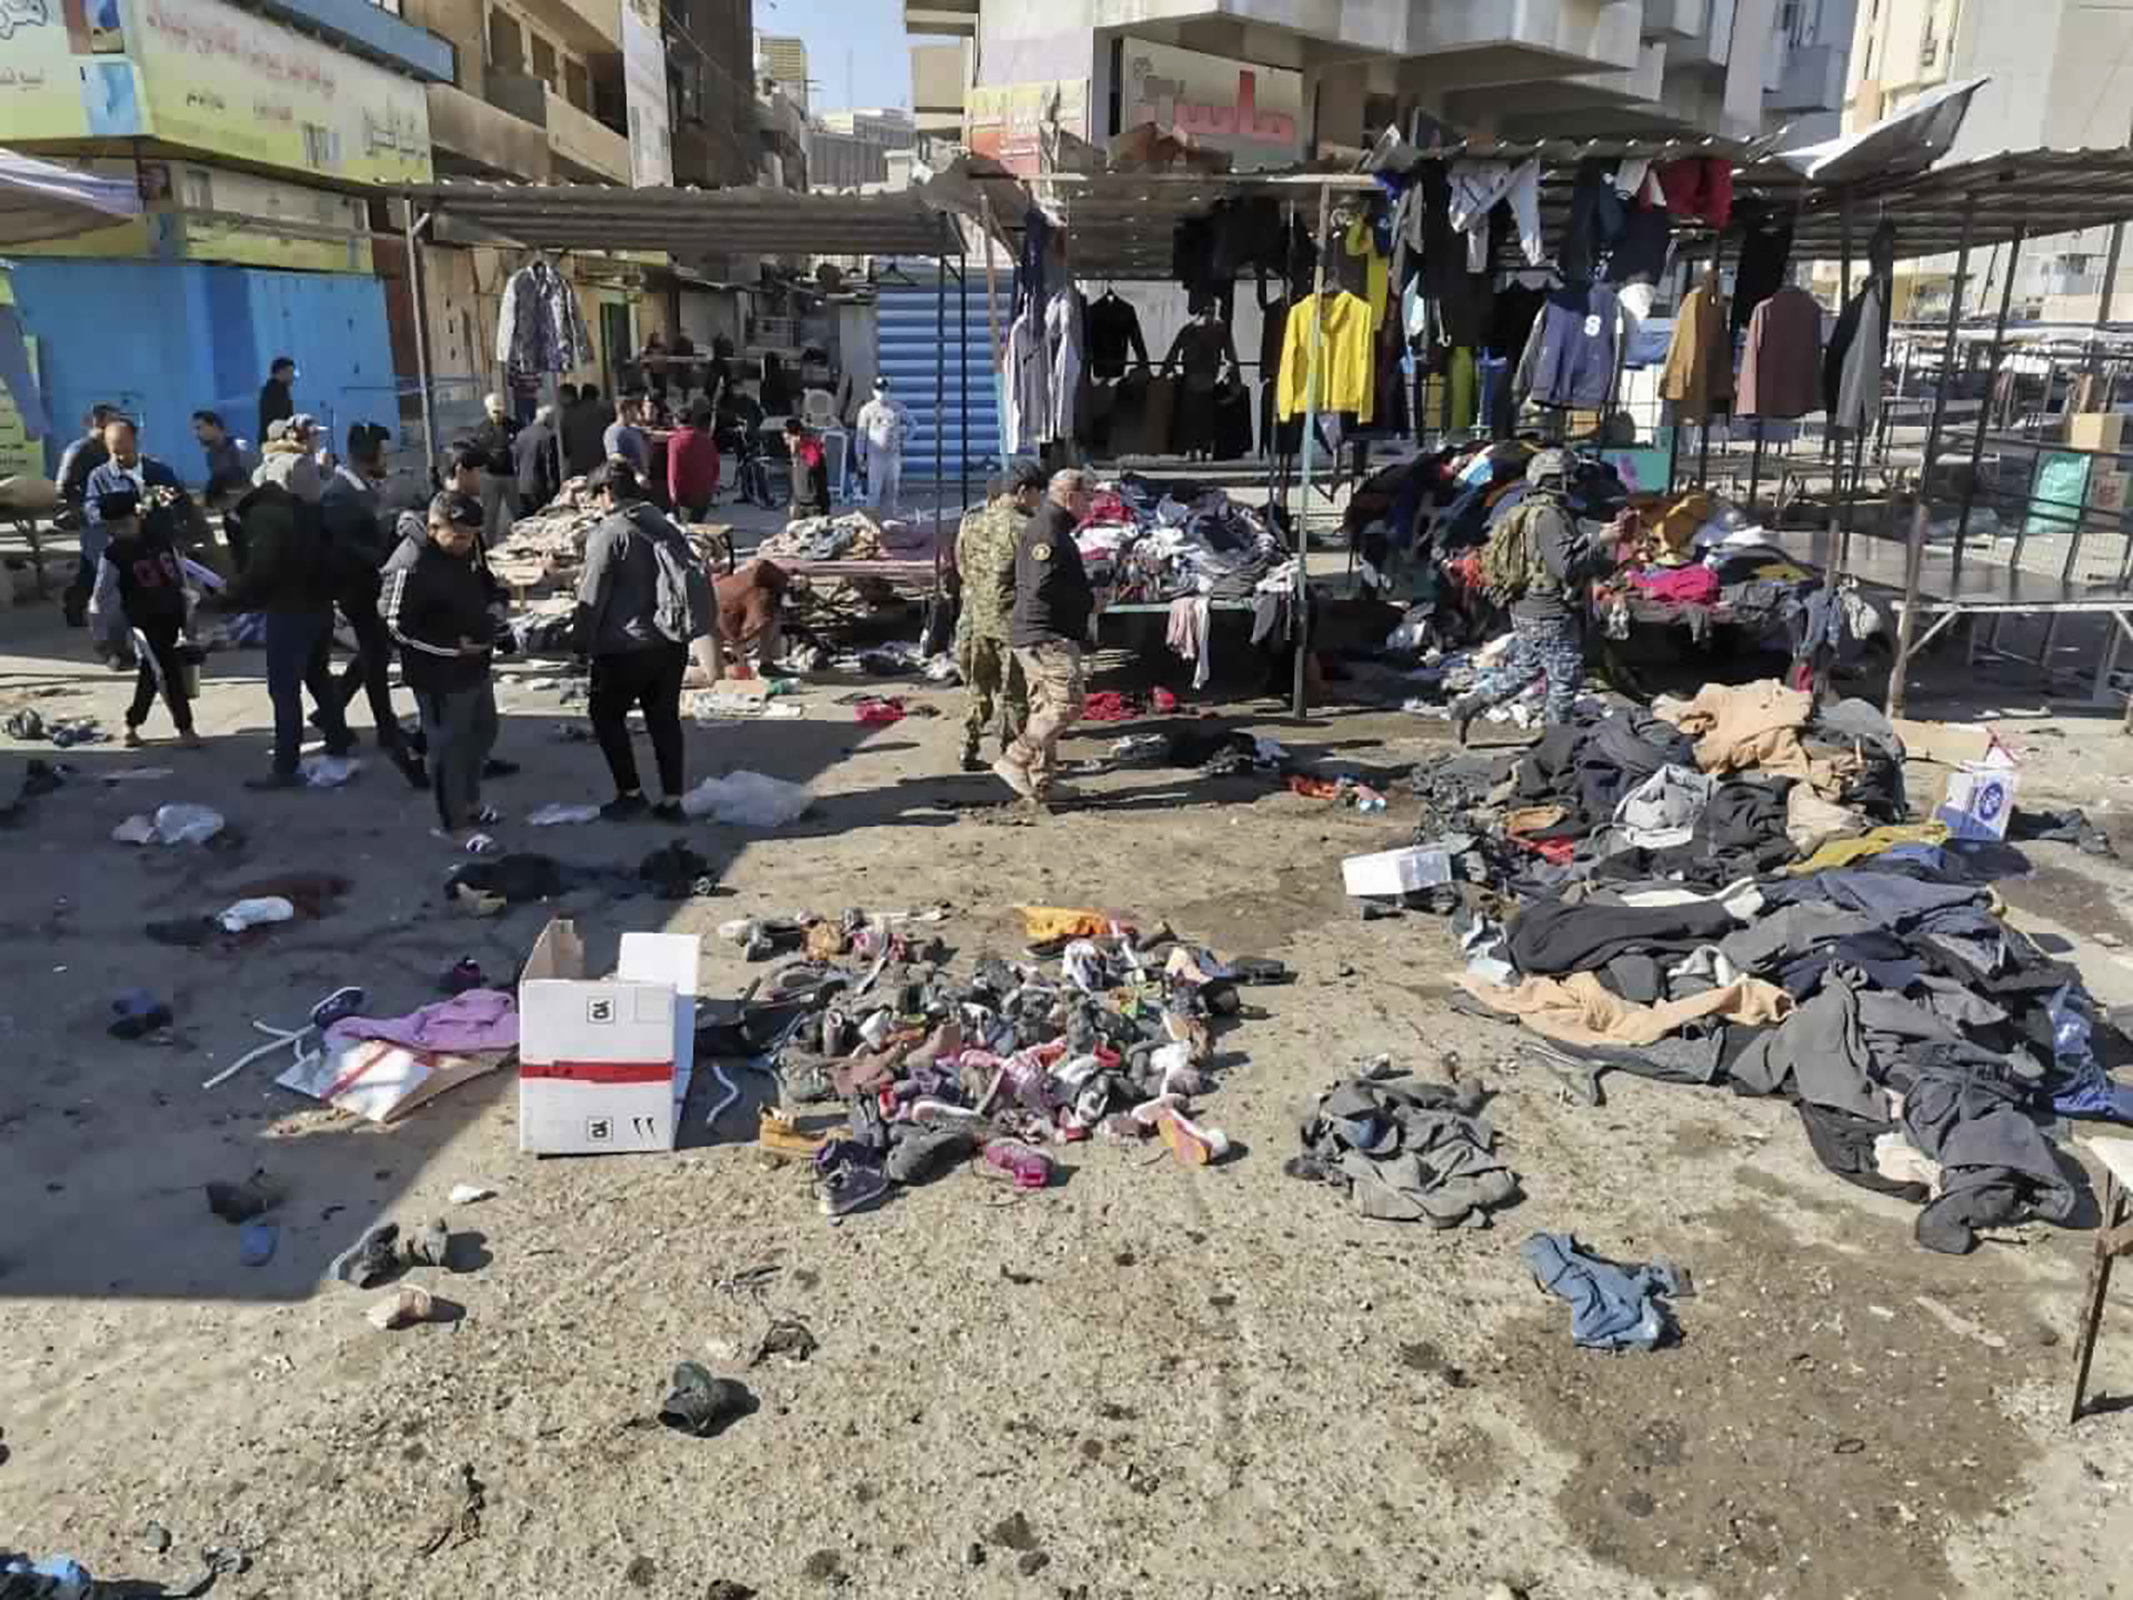 Twin suicide bombings in Baghdad leave 32 dead